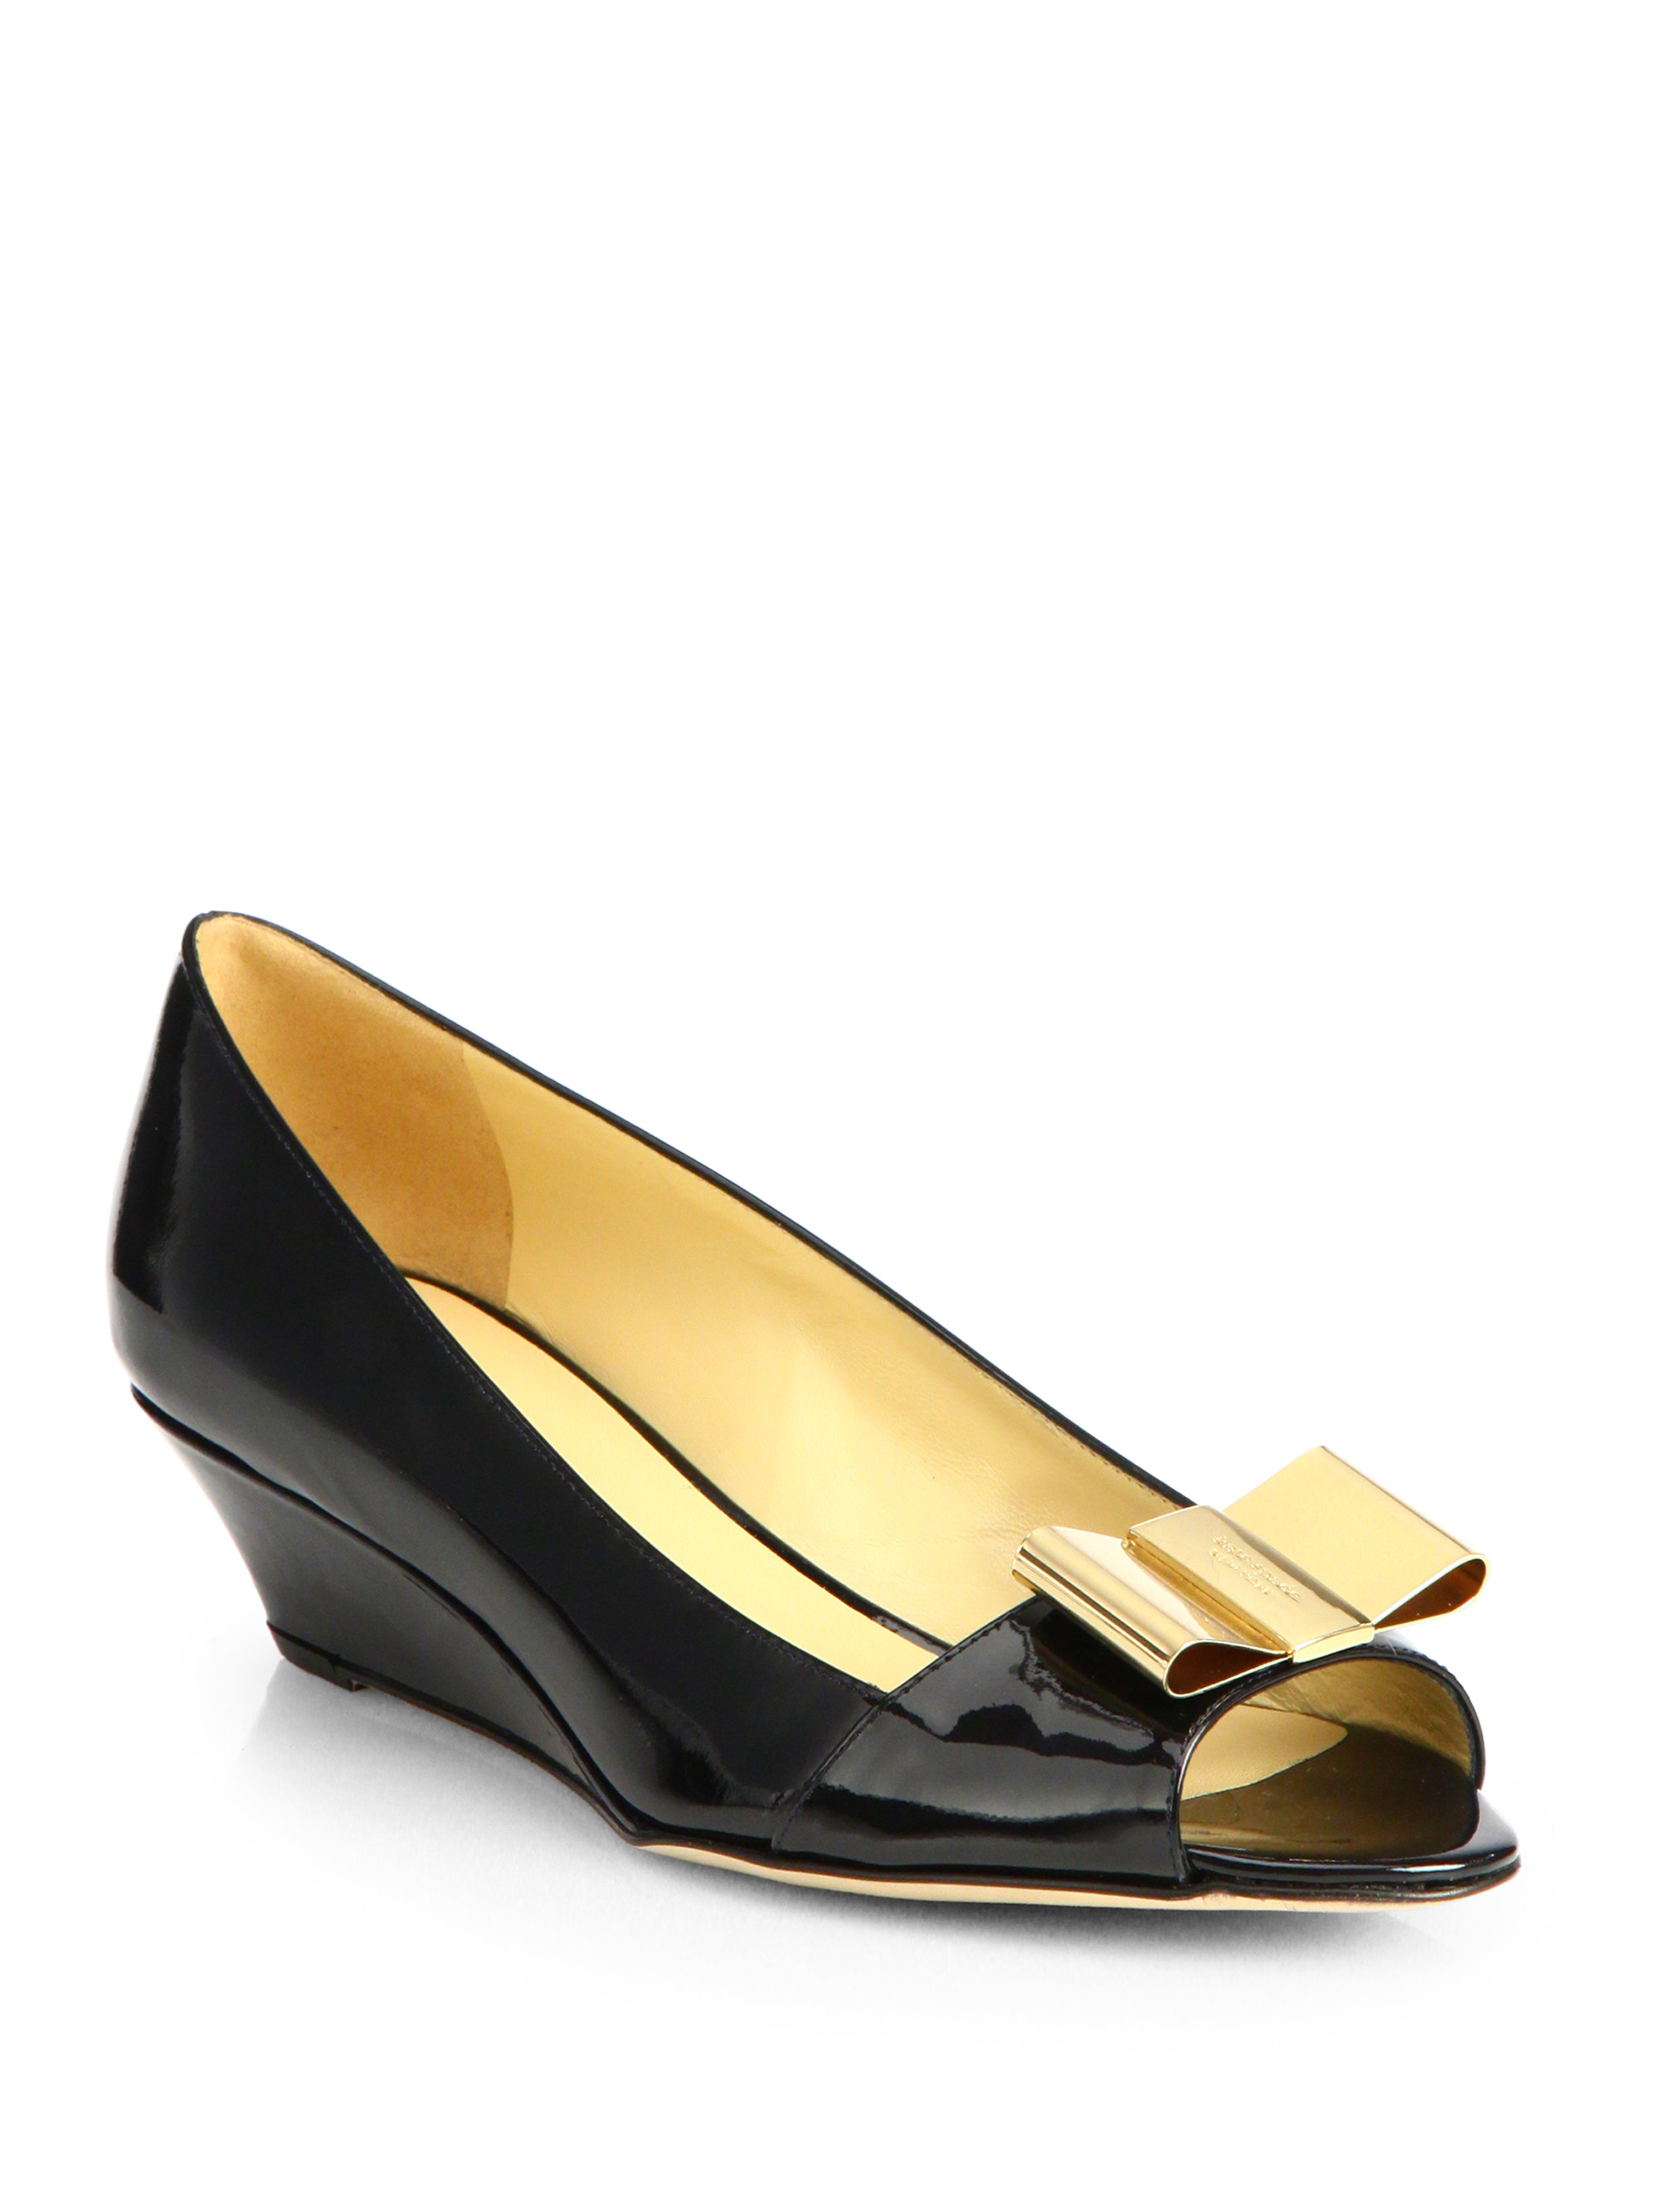 Kate Spade New York Theresa Patent Leather Pumps sale amazon comfortable for sale free shipping pre order 100% guaranteed for sale 1yDRqkhj